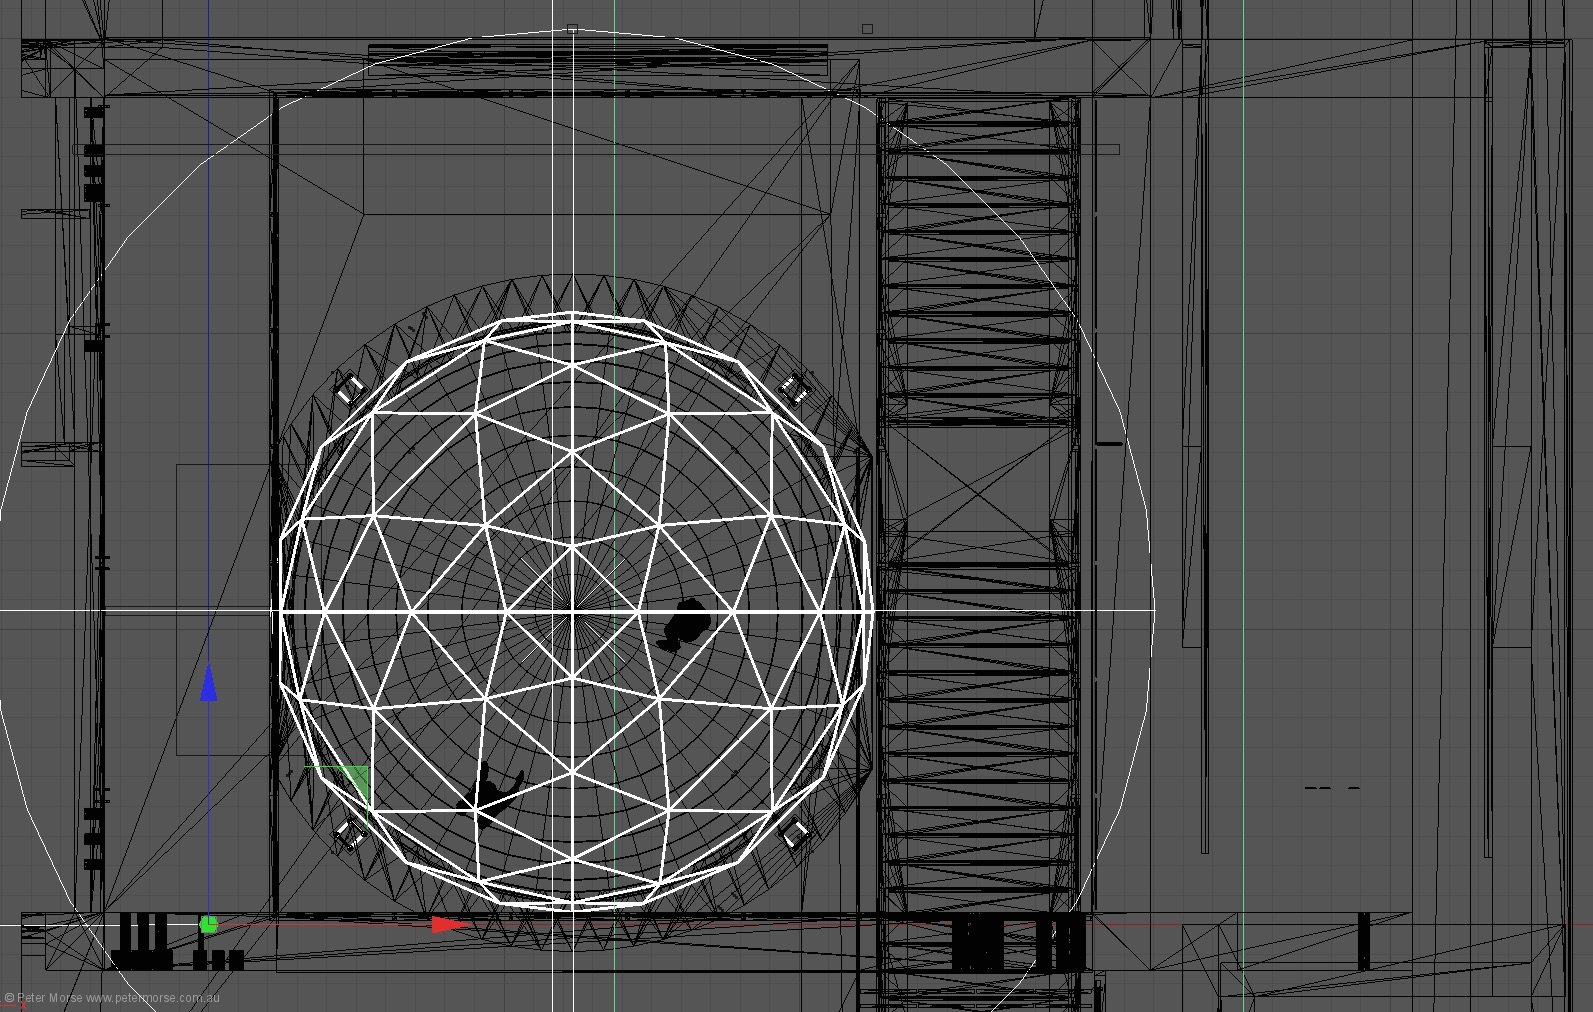 MCIC+DOME 2015-07-15 at 1.23.30 pm